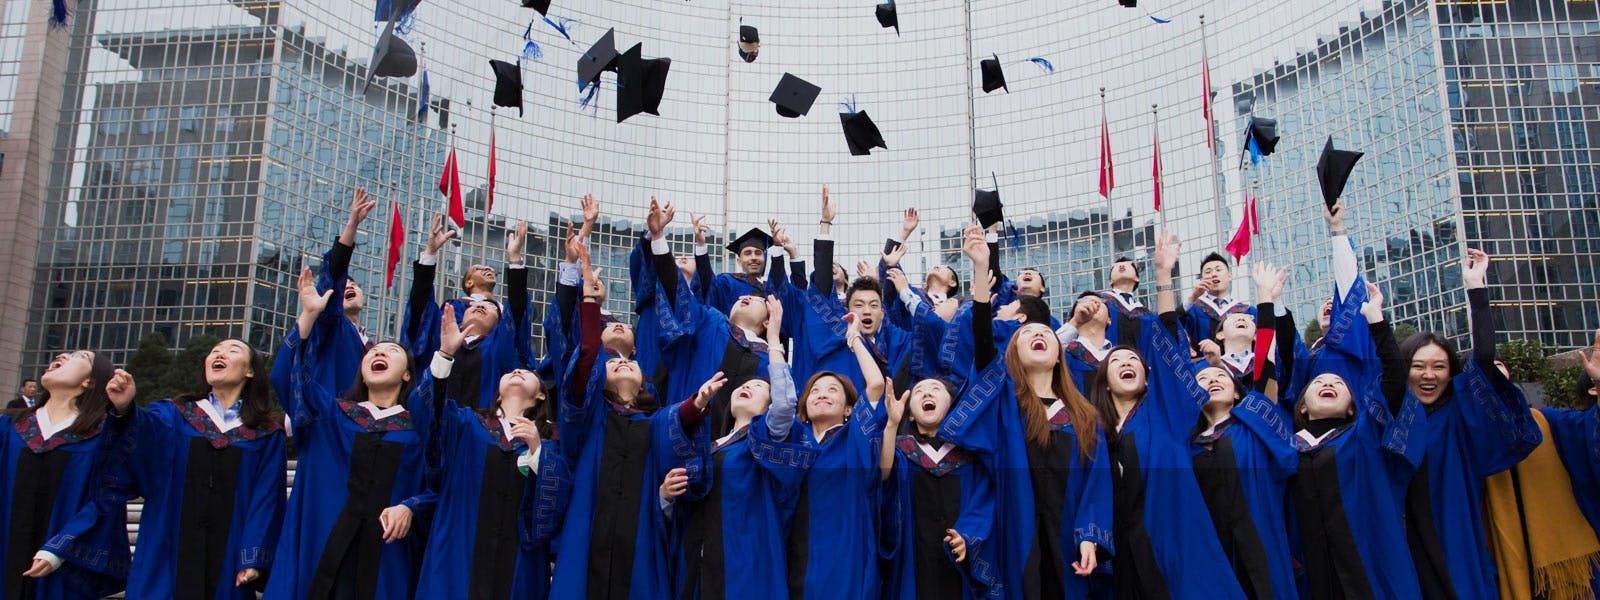 Guide to Study in China for International Students